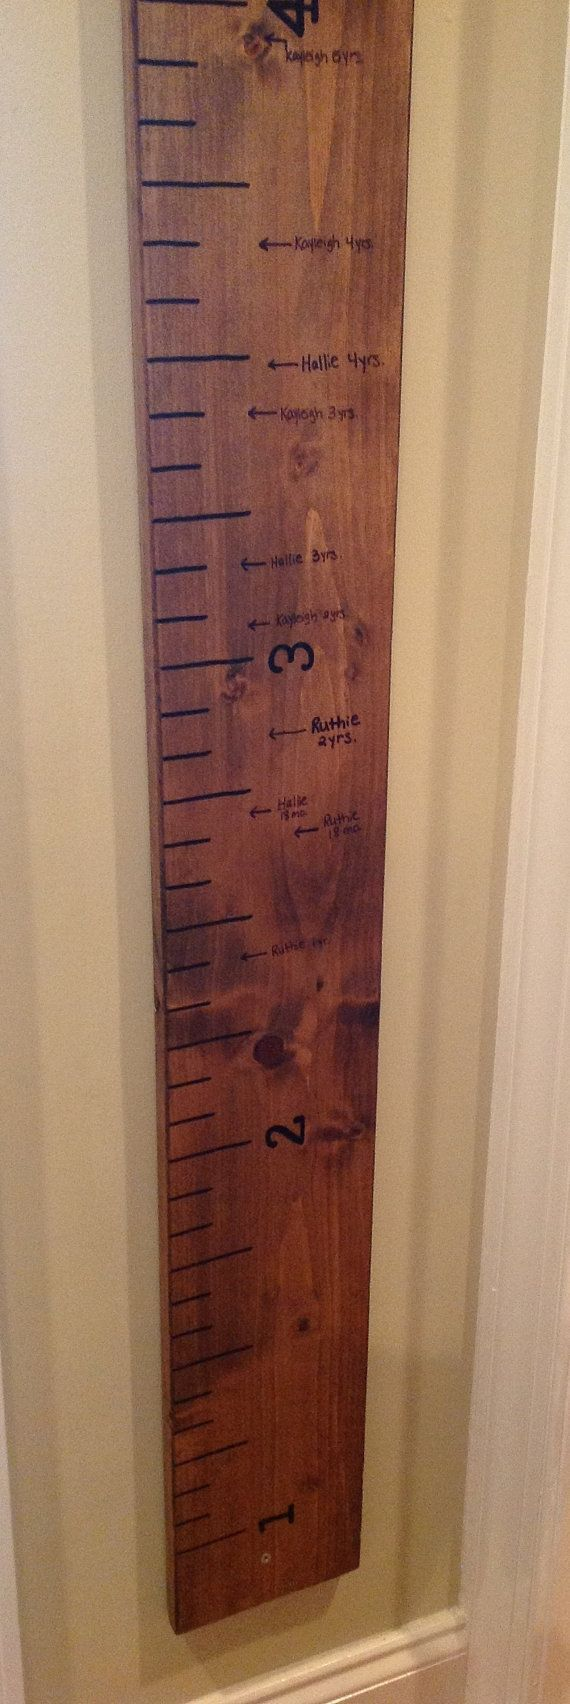 Giant Ruler. Family Growth Chart. Children's Growth Chart. Children's Measuring Chart. Rustic Home Decor. Wall Hanging.